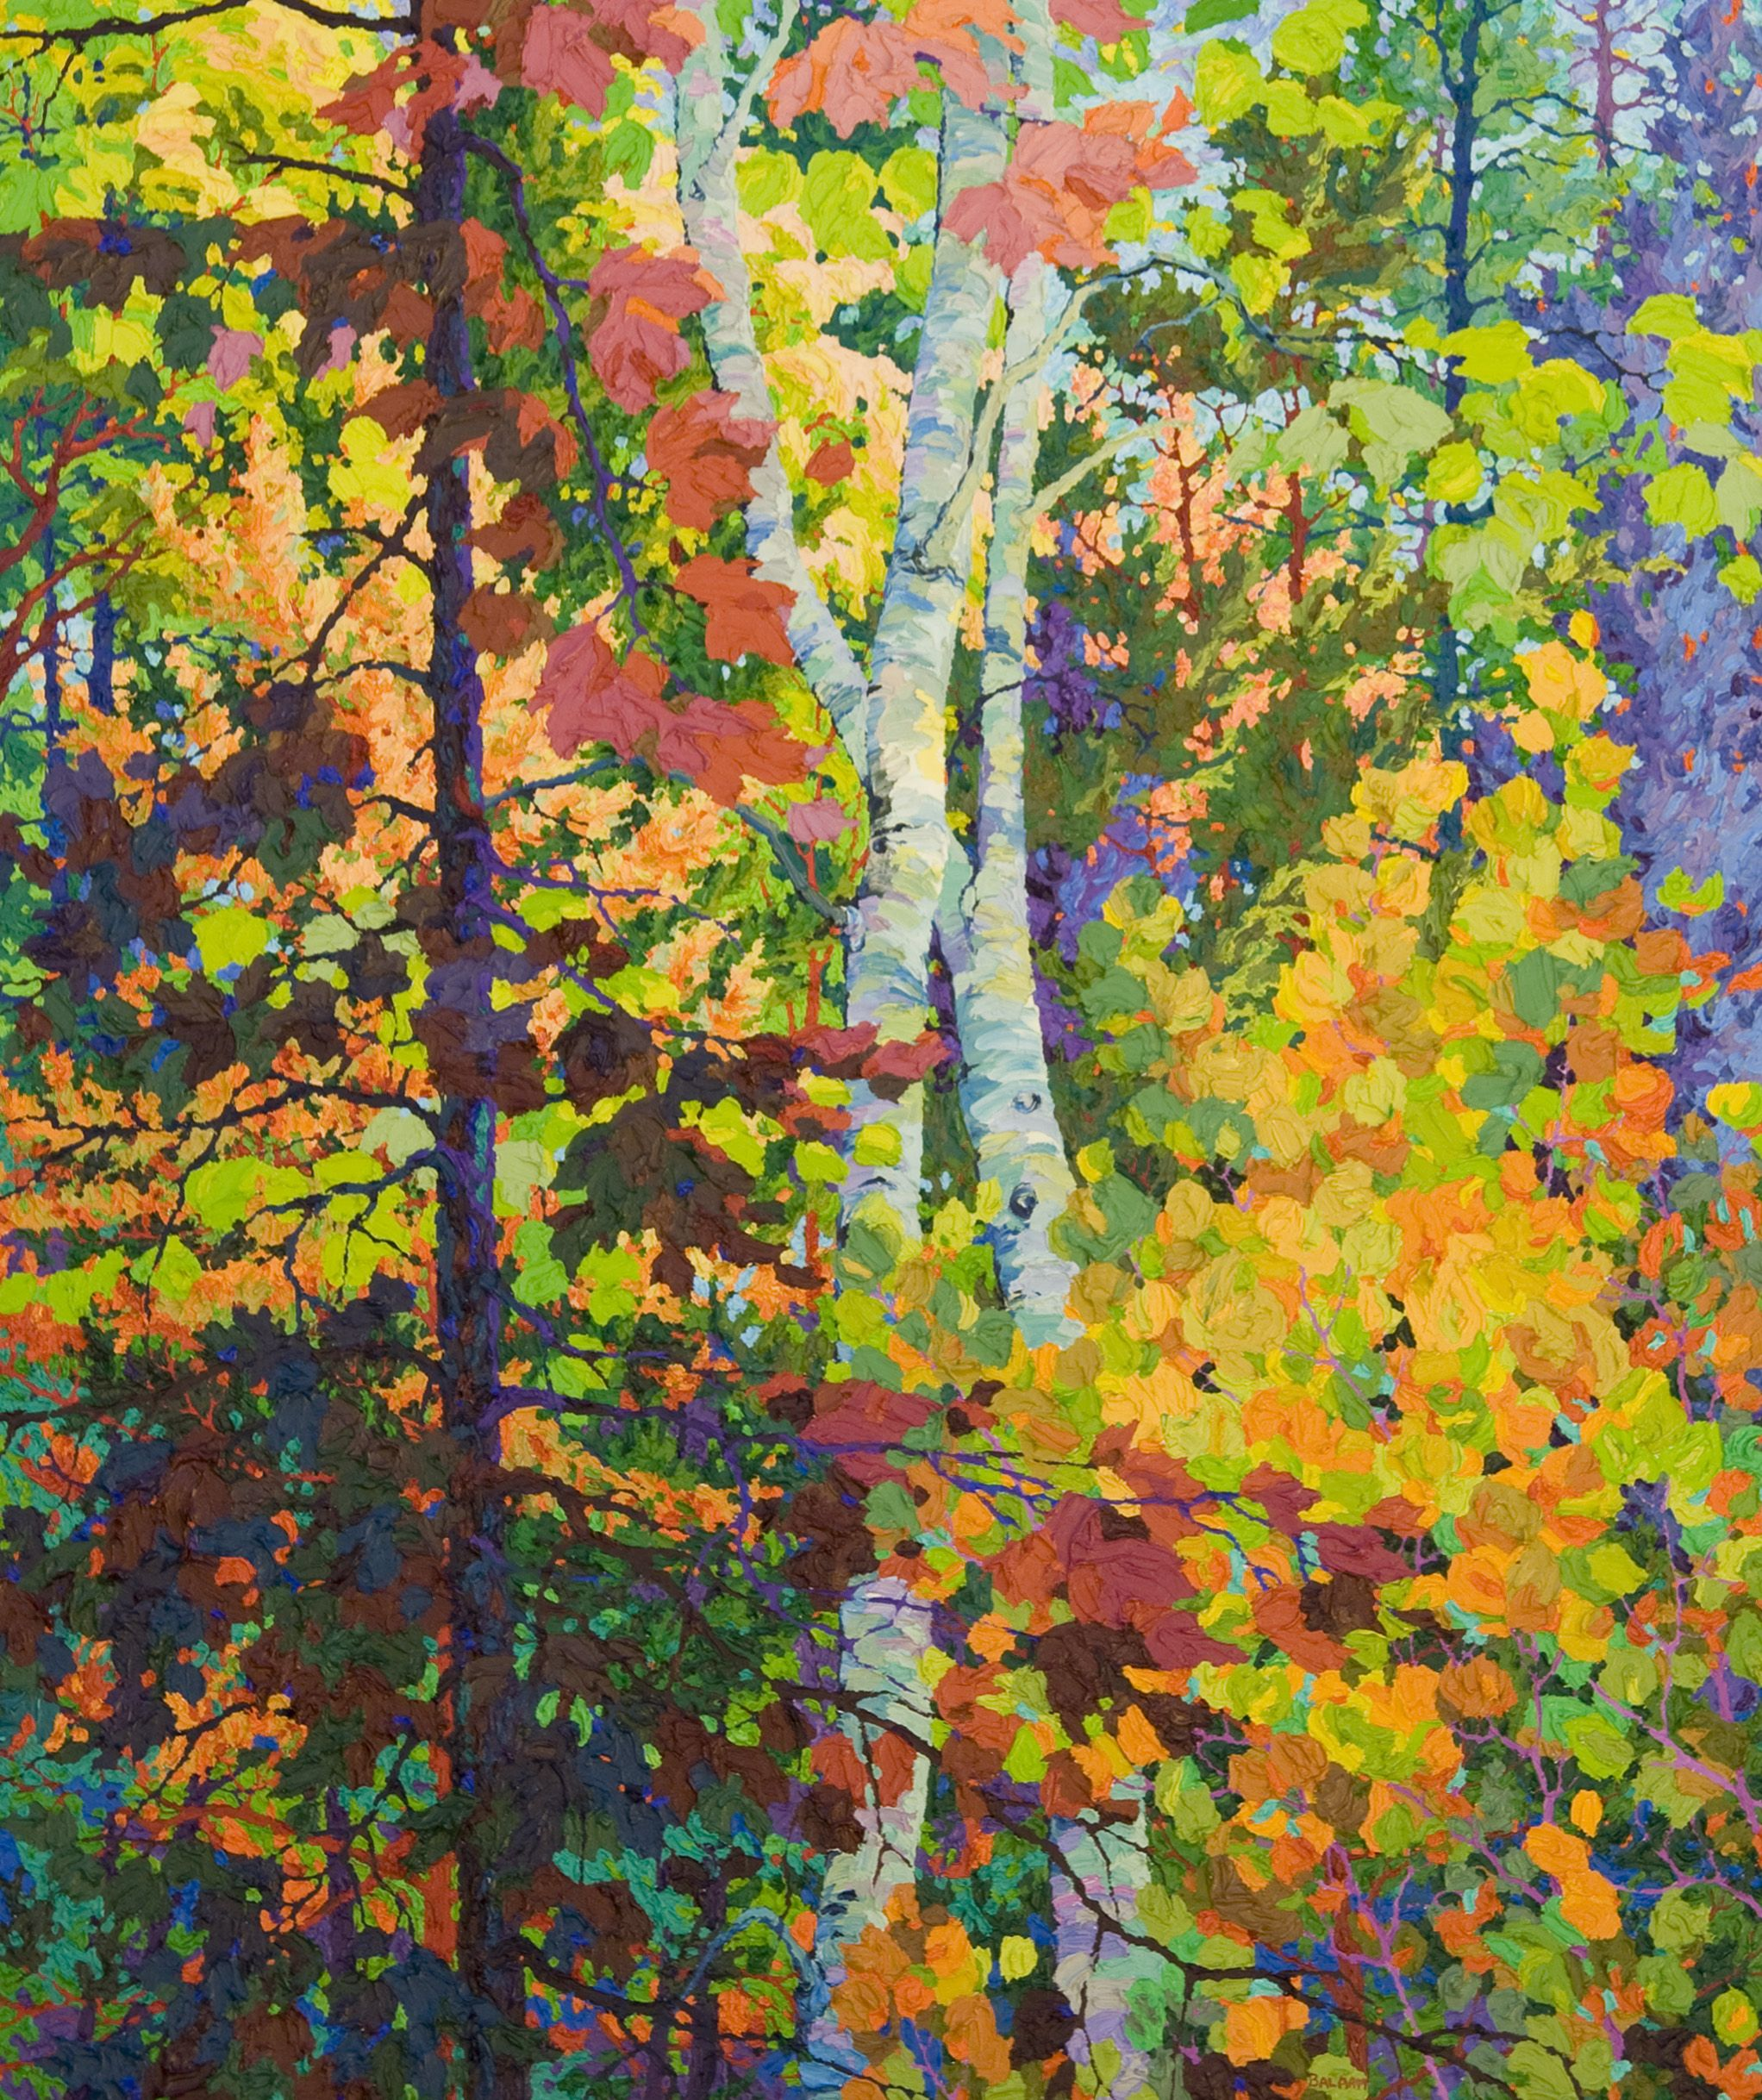 A Posteval Forest, oil on canvas by Frank Balaam at a Scottsdale art gallery